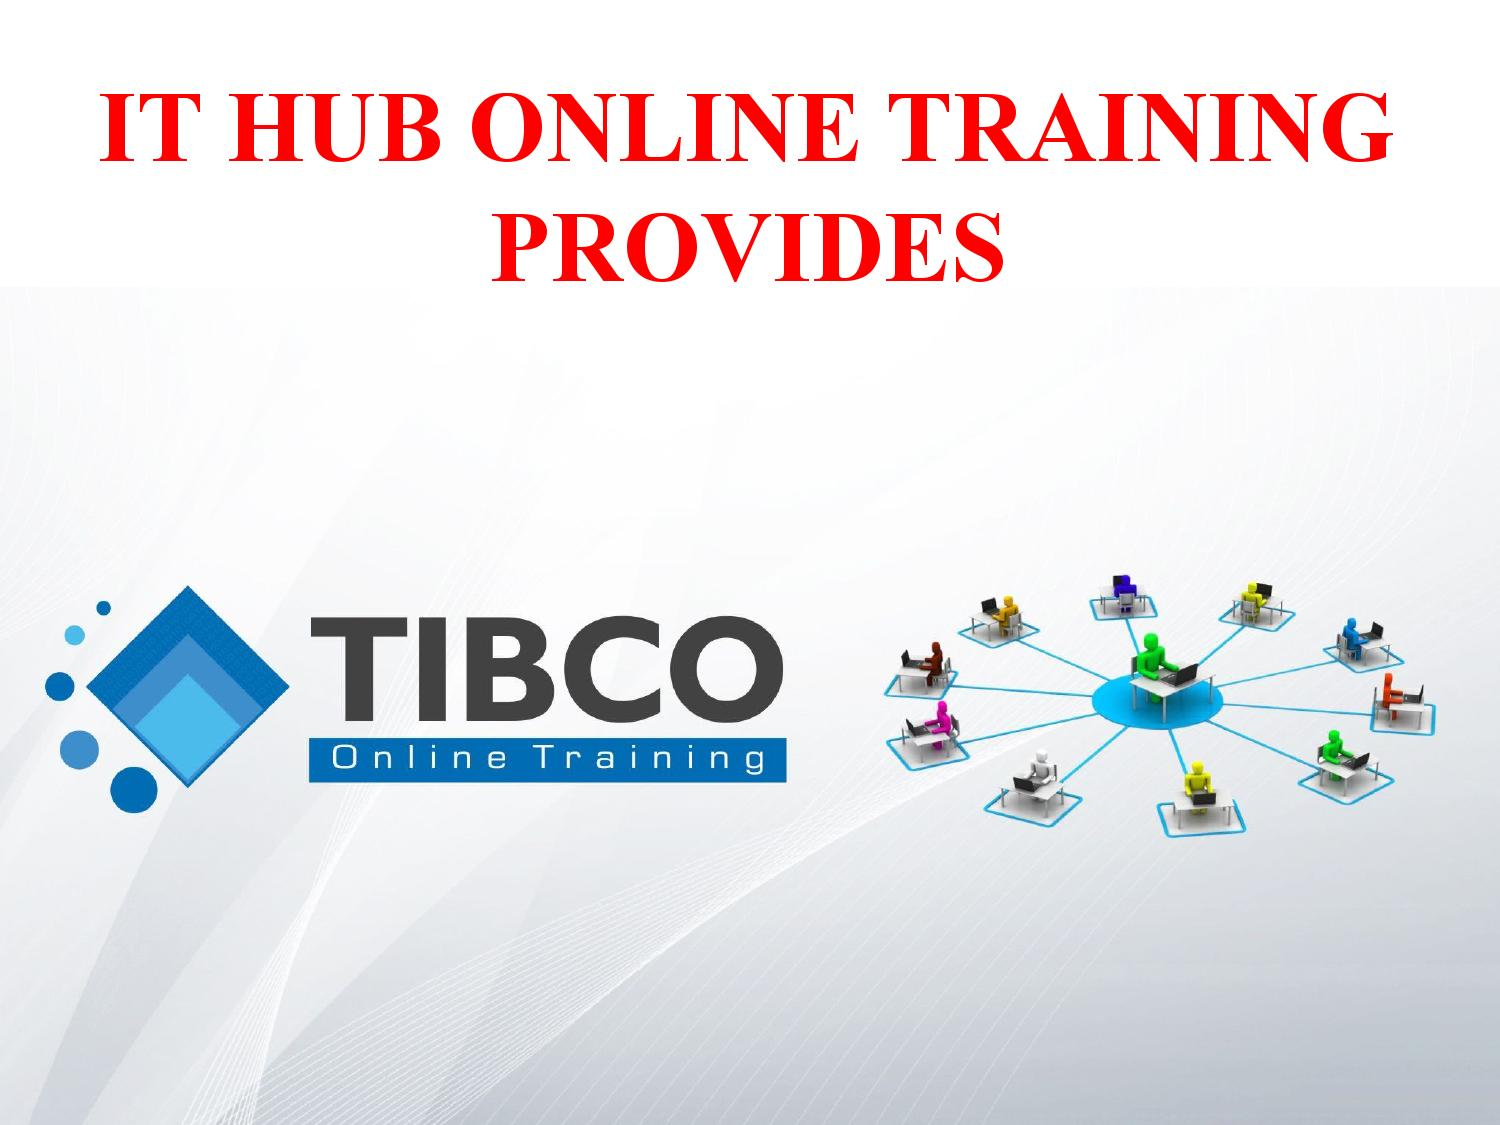 TIBCO ONLINE TRAINING and TUTORIALS IN INDIA USA UK CANADA